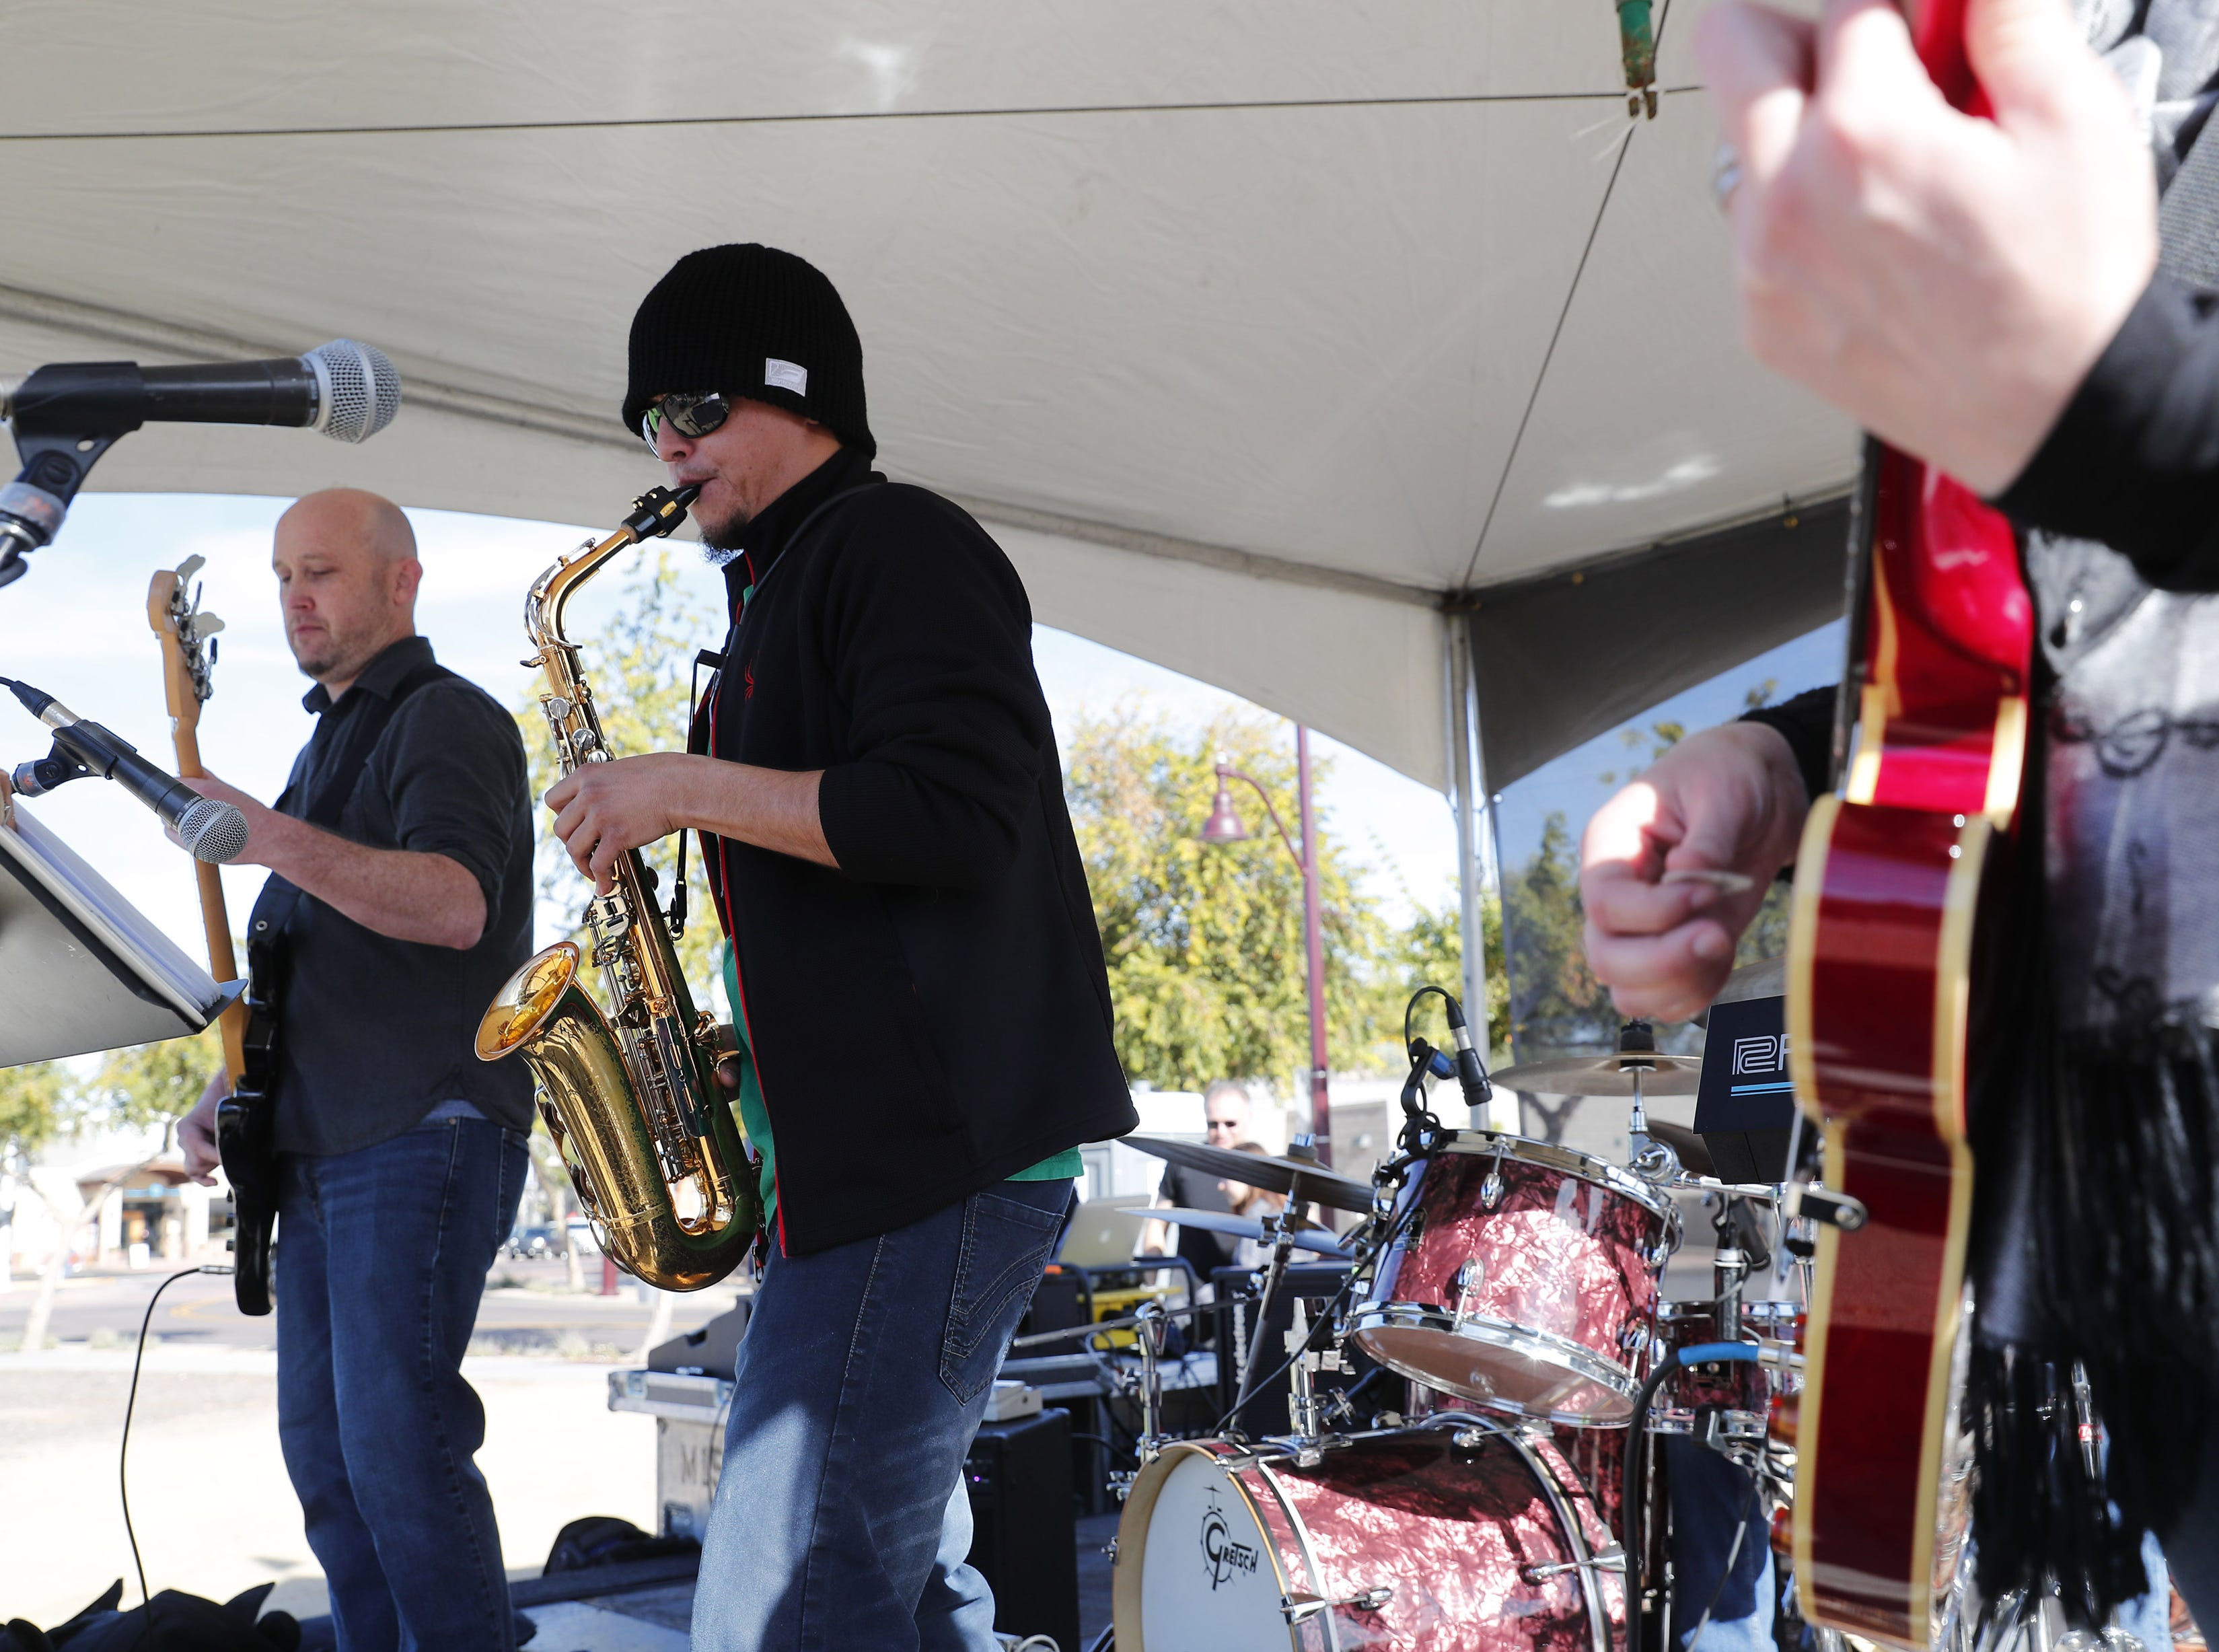 The Phoenician Four Jazztet performs for Runners on 1st Ave. during the Rock 'N' Roll Marathon in Scottsdale on Jan. 20, 2019.